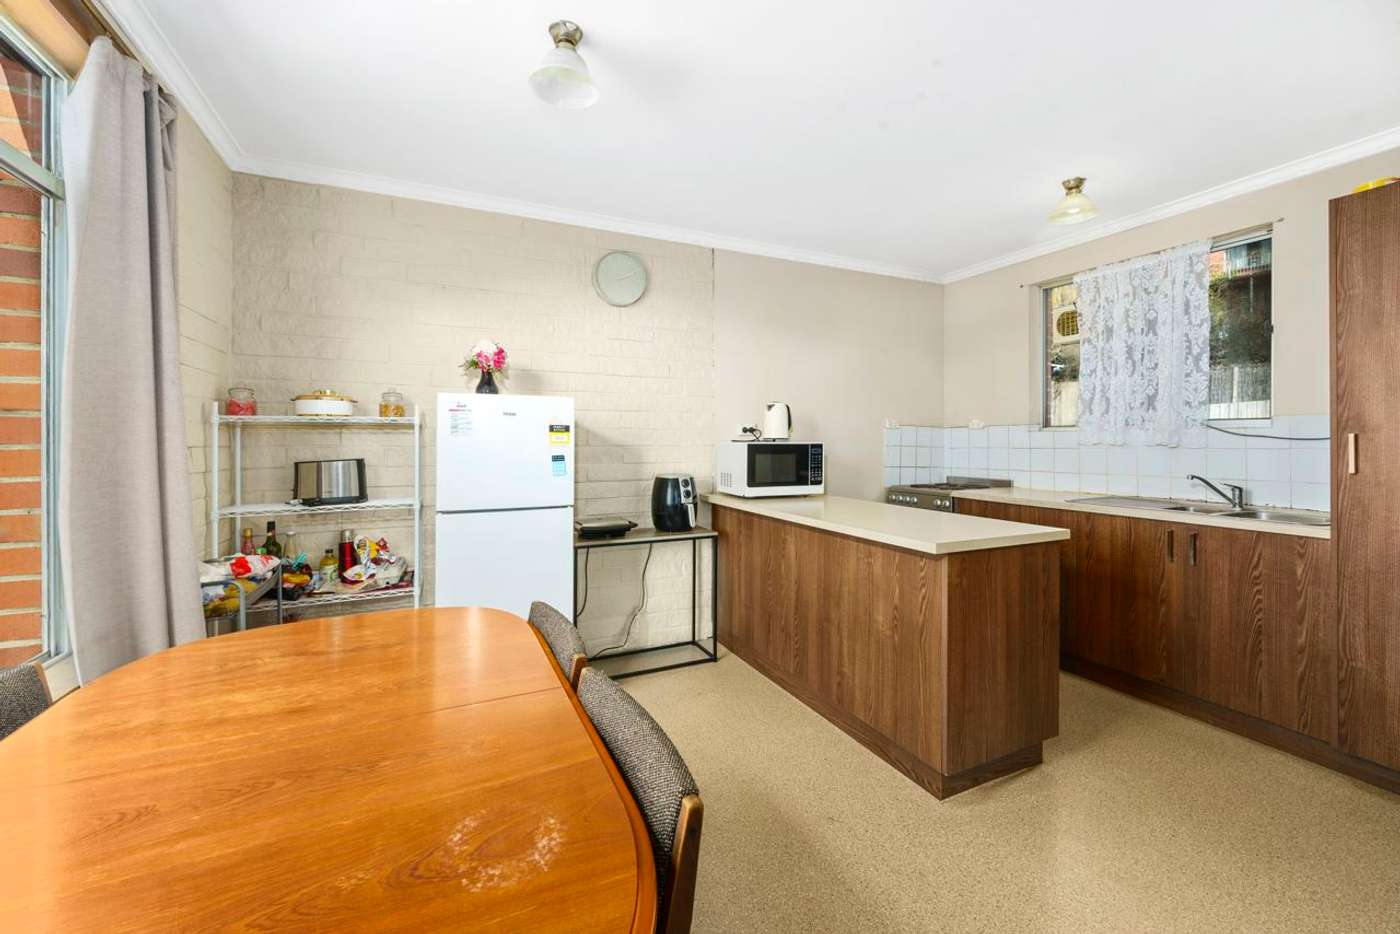 Fifth view of Homely flat listing, 1/16a Coleman Street, Moonah TAS 7009